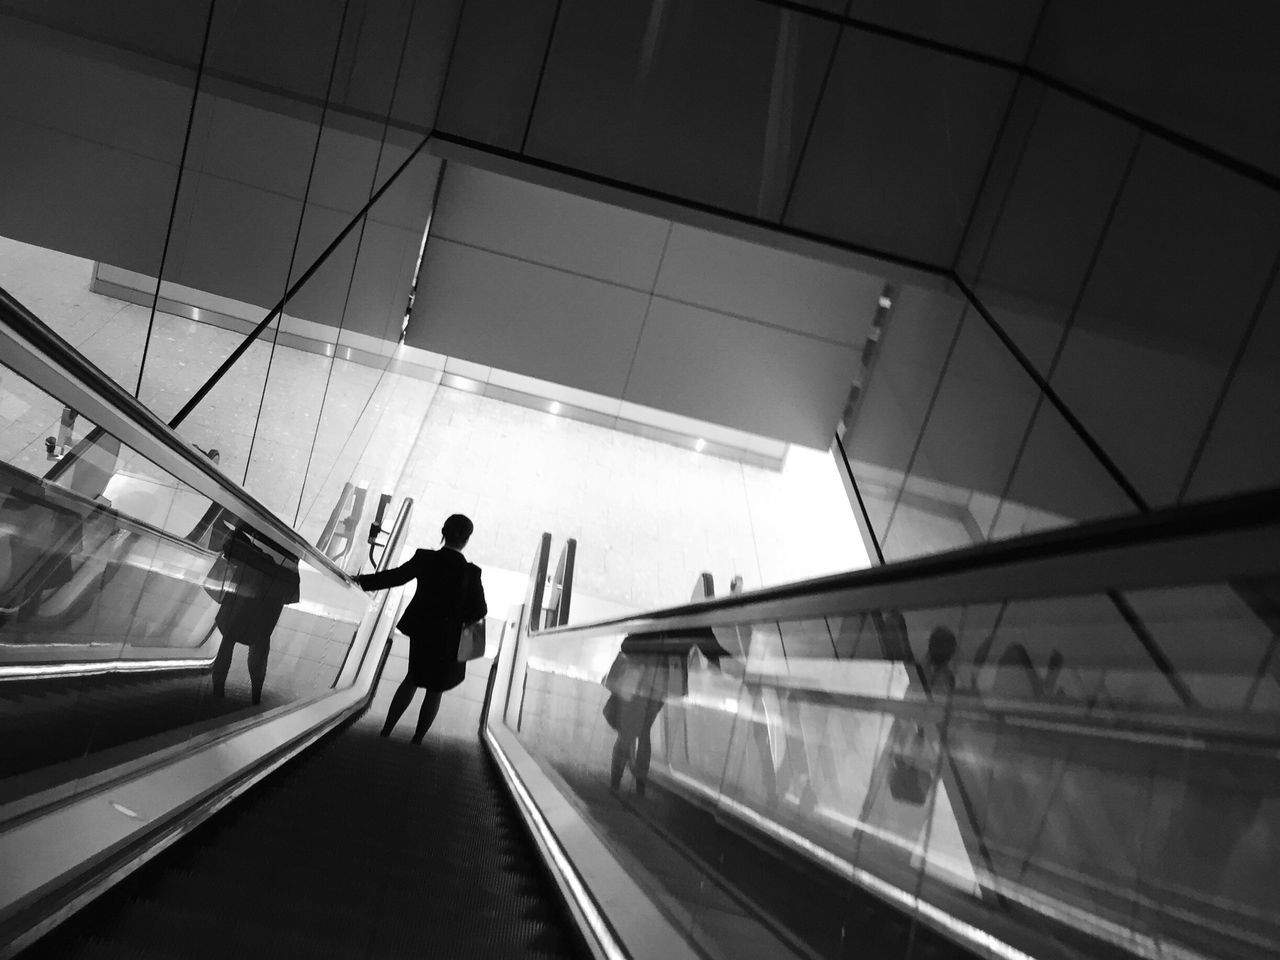 Transportation Modern Moving Walkway  Darkness And Light Silhouette EyeEm Best Shots - Black + White Monochrome Bw_collection